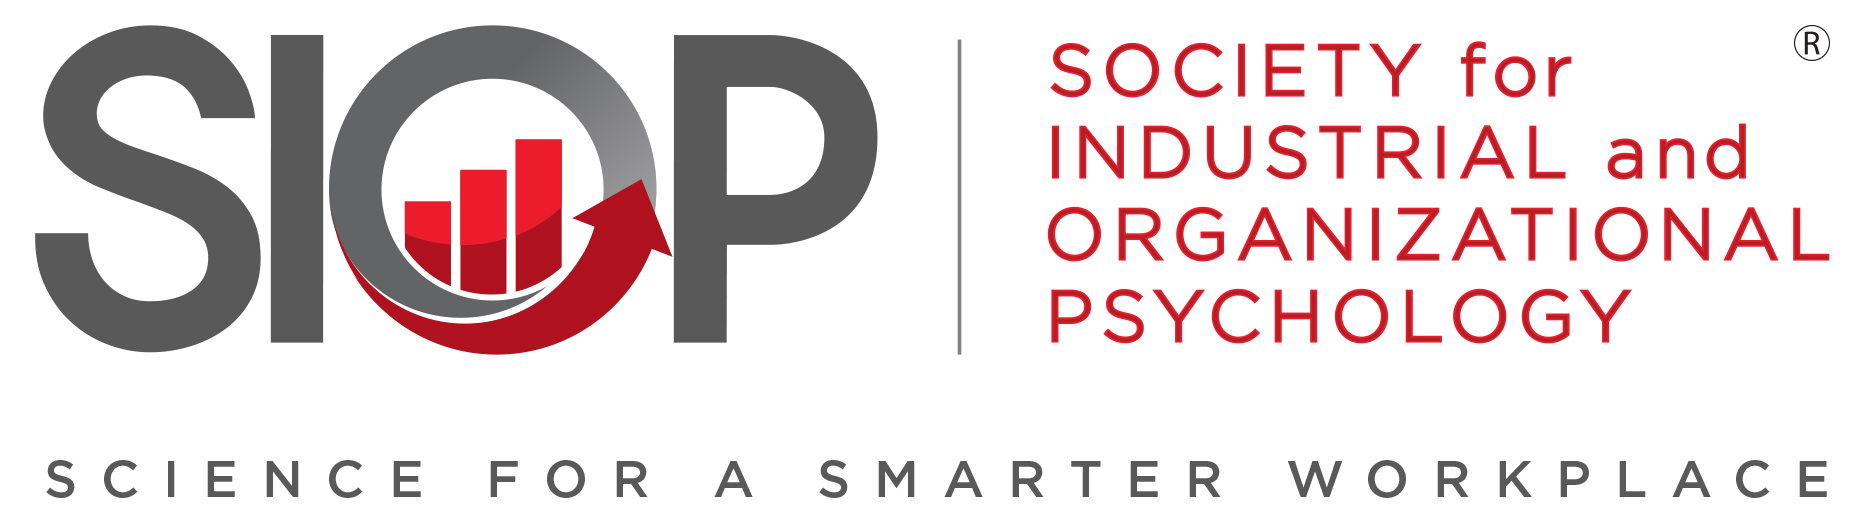 Society for Industrial and Organizational Psychology logo